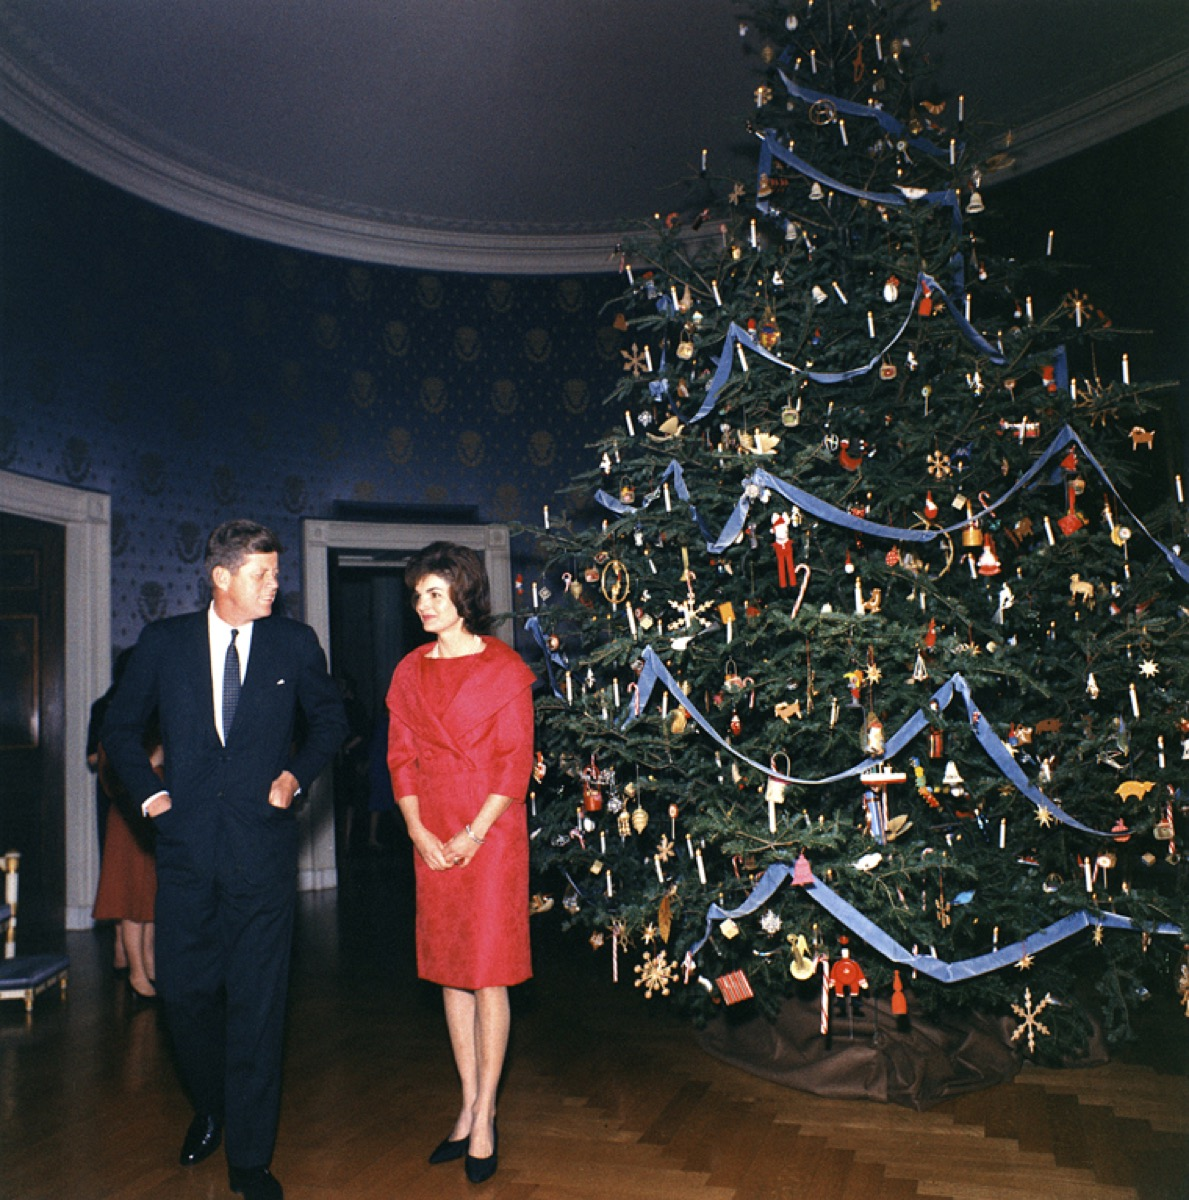 john f. kennedy and jaqueline kennedy onassis in blue room at white house with christmas tree